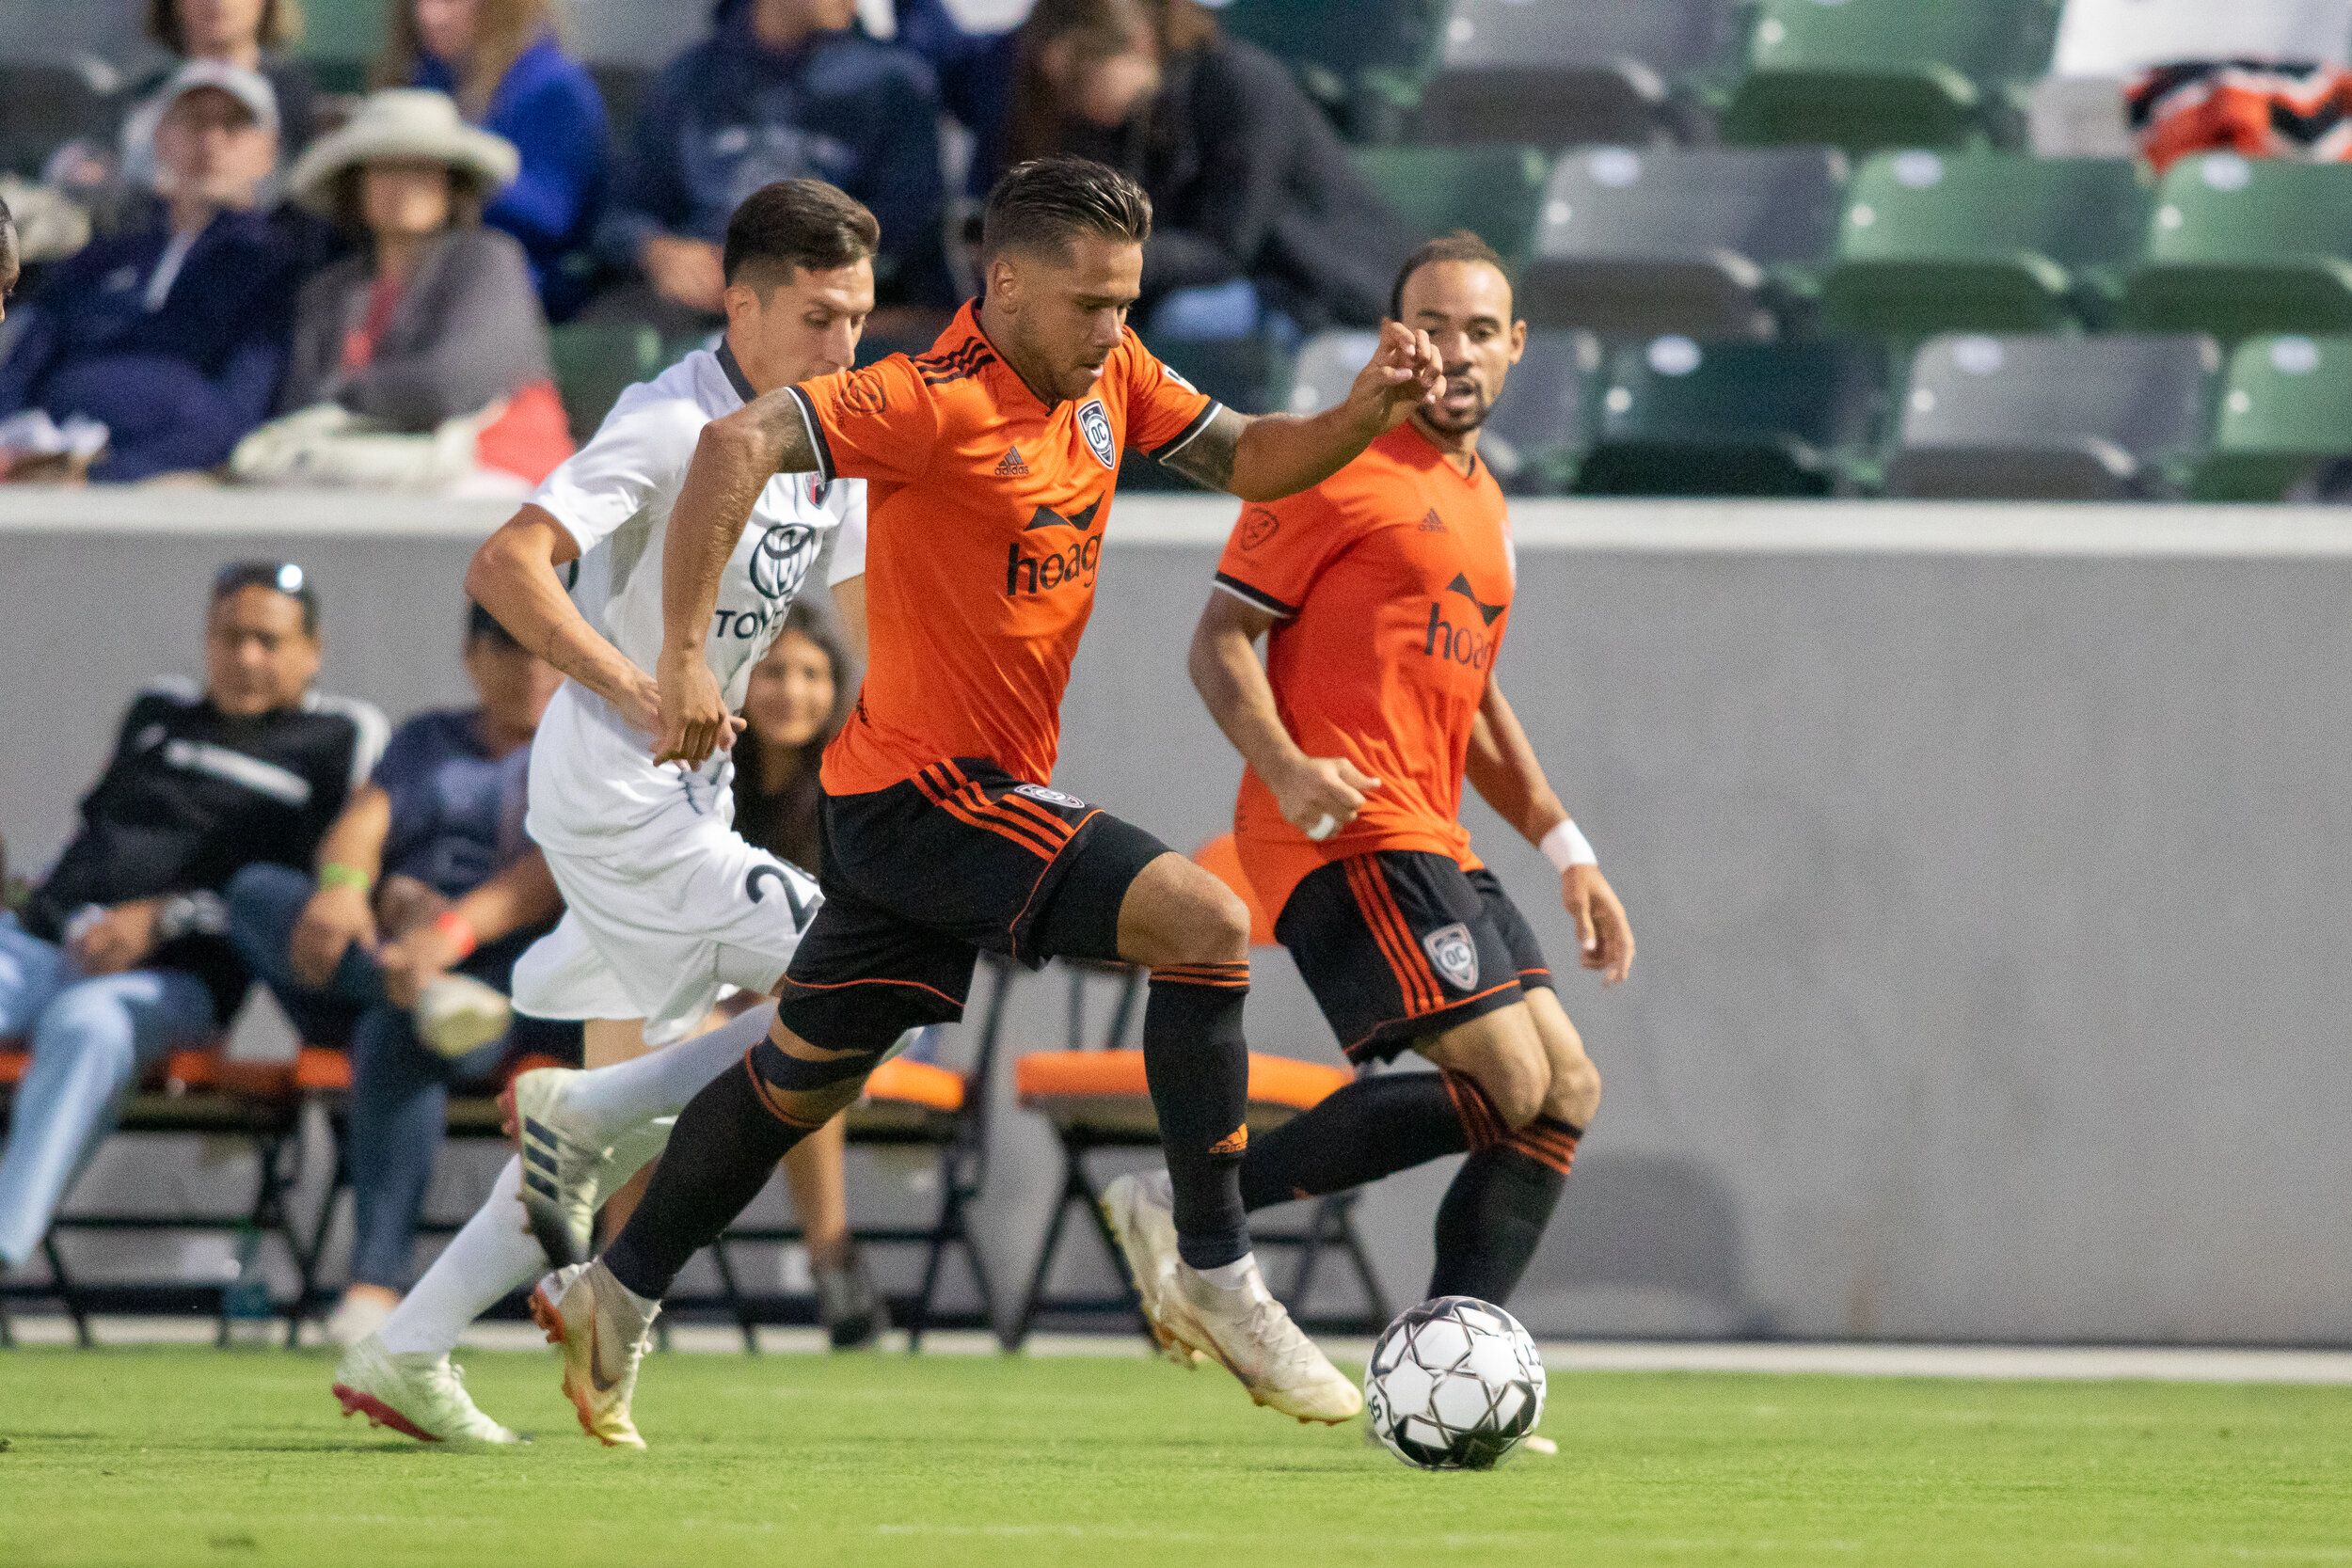 Harry Forrester has found his form in the last few weeks, turning his team-leading chances created into assists.  Photo courtesy of Liza Rosales/Orange County SC .